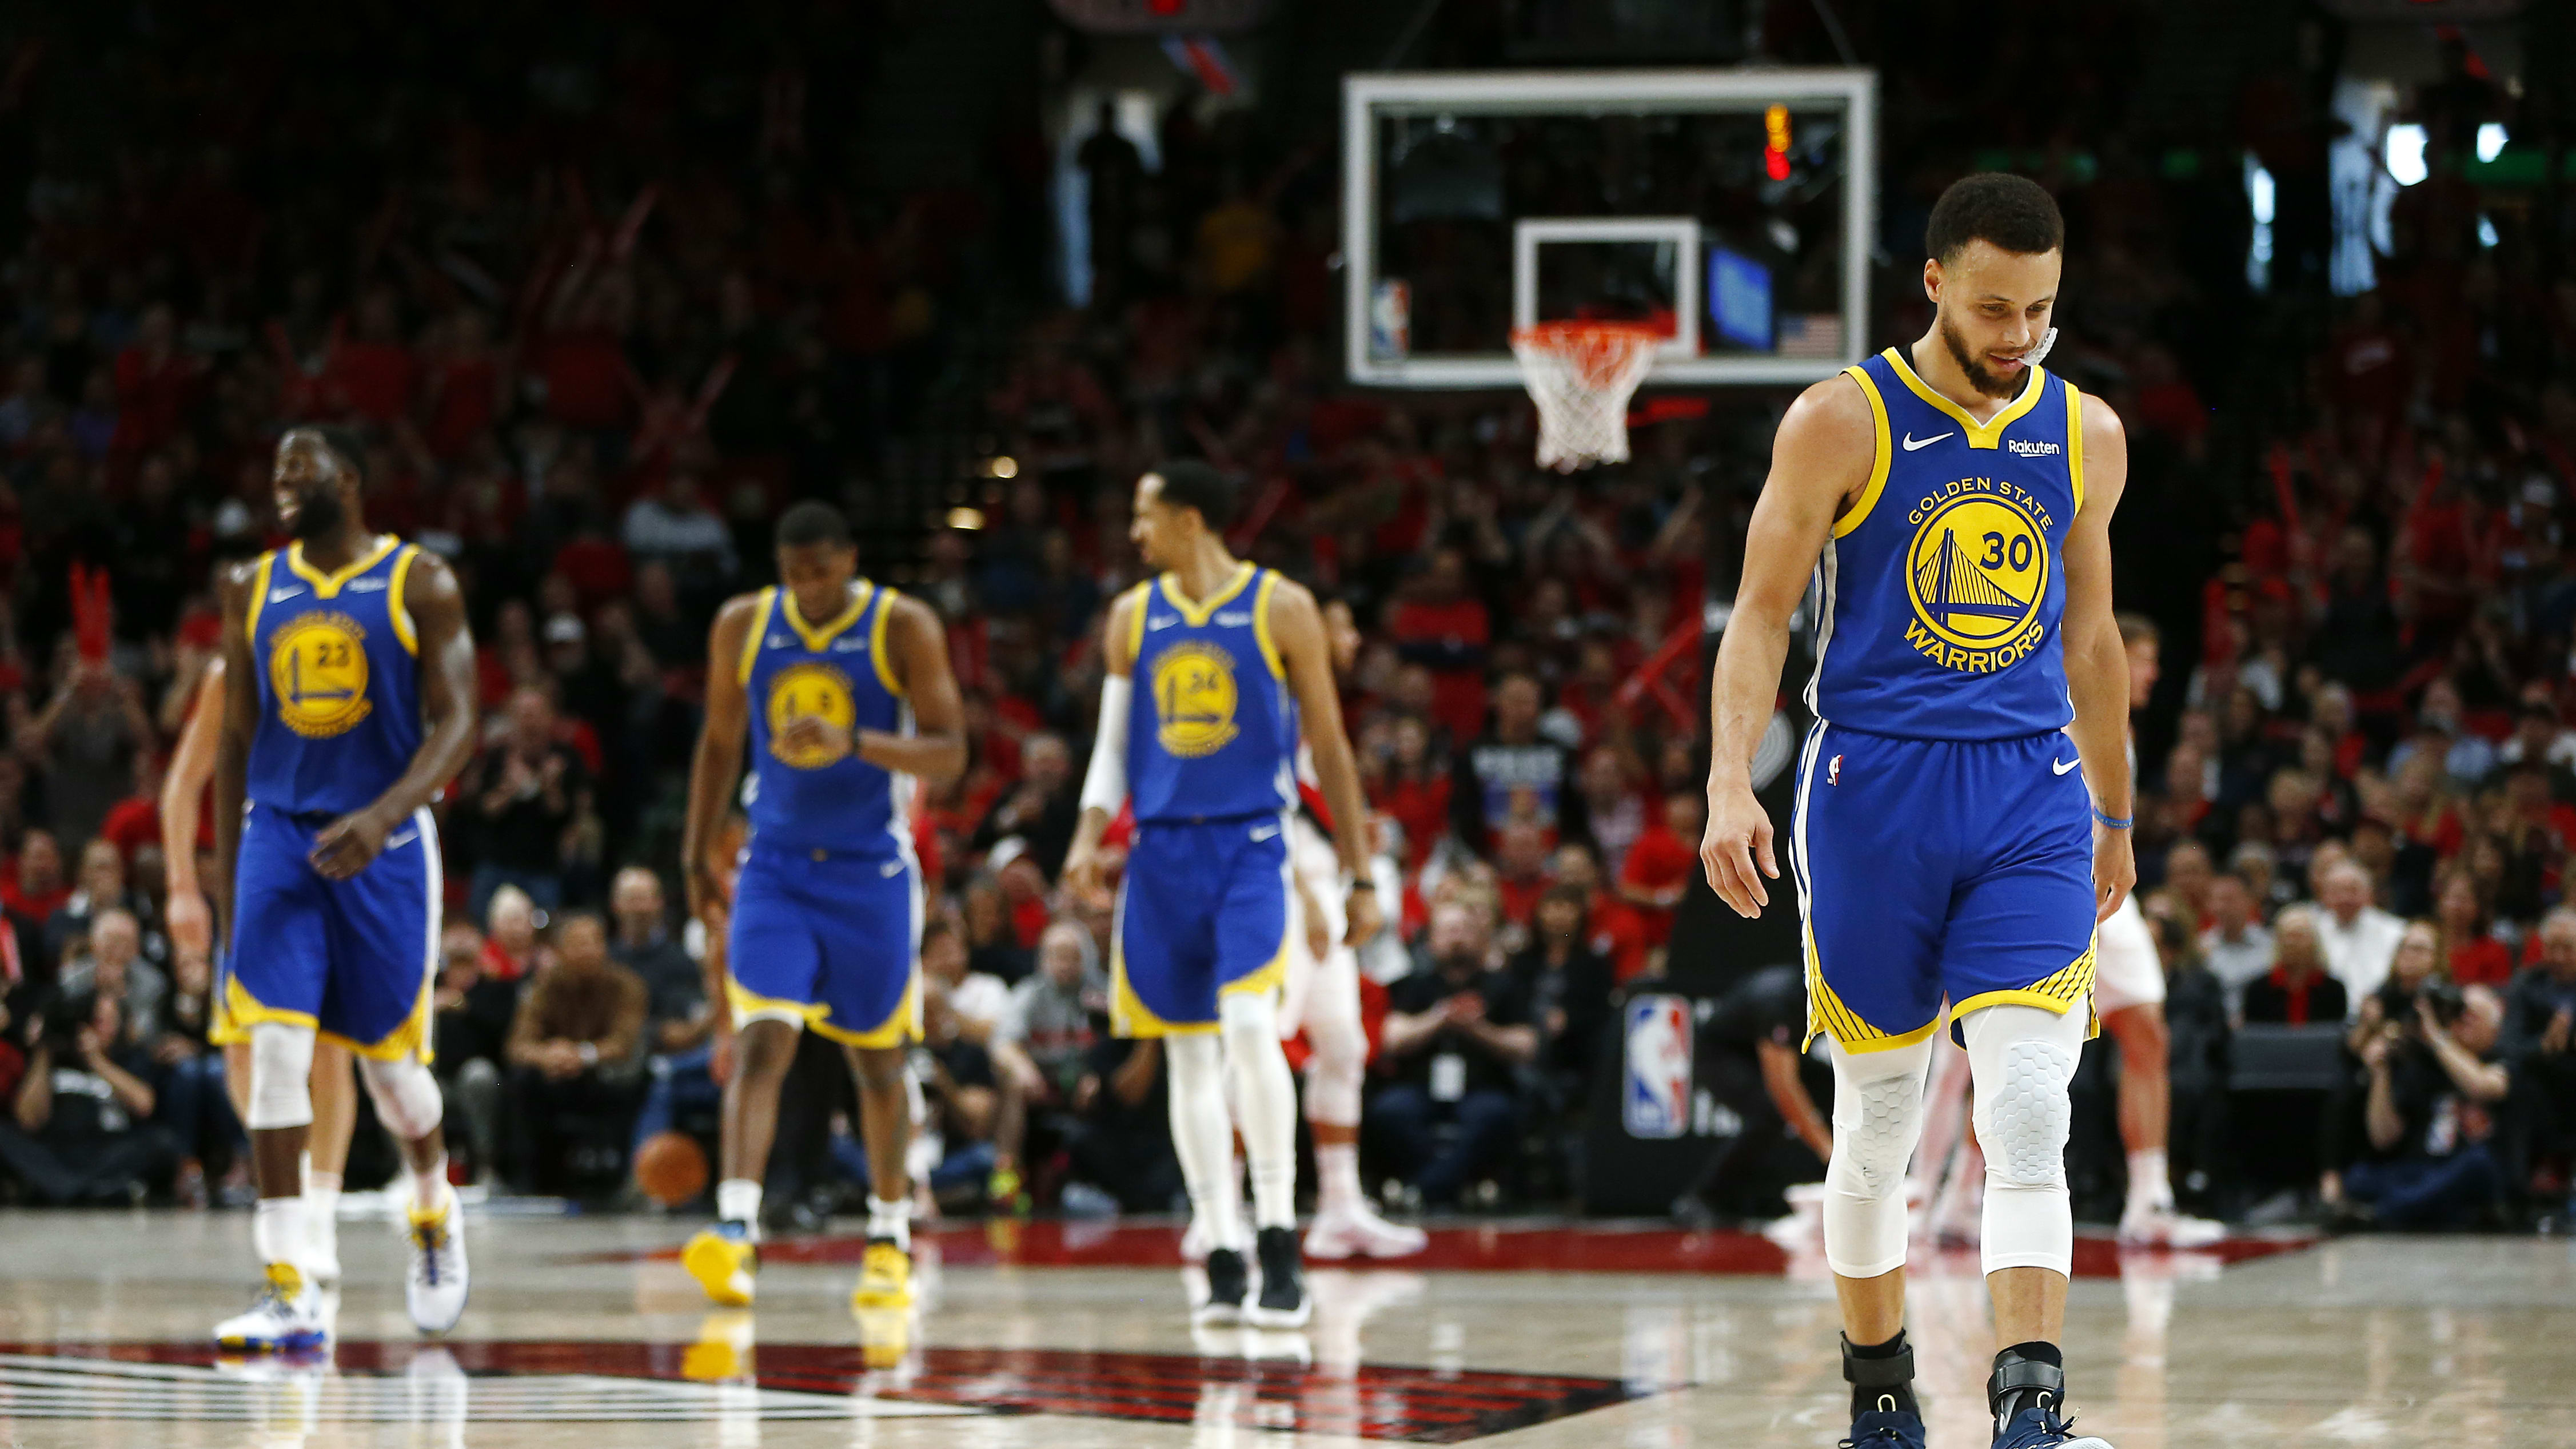 PORTLAND, OREGON - MAY 20: Stephen Curry #30 of the Golden State Warriors reacts during the second half against the Portland Trail Blazers in game four of the NBA Western Conference Finals at Moda Center on May 20, 2019 in Portland, Oregon. NOTE TO USER: User expressly acknowledges and agrees that, by downloading and or using this photograph, User is consenting to the terms and conditions of the Getty Images License Agreement. (Photo by Jonathan Ferrey/Getty Images)